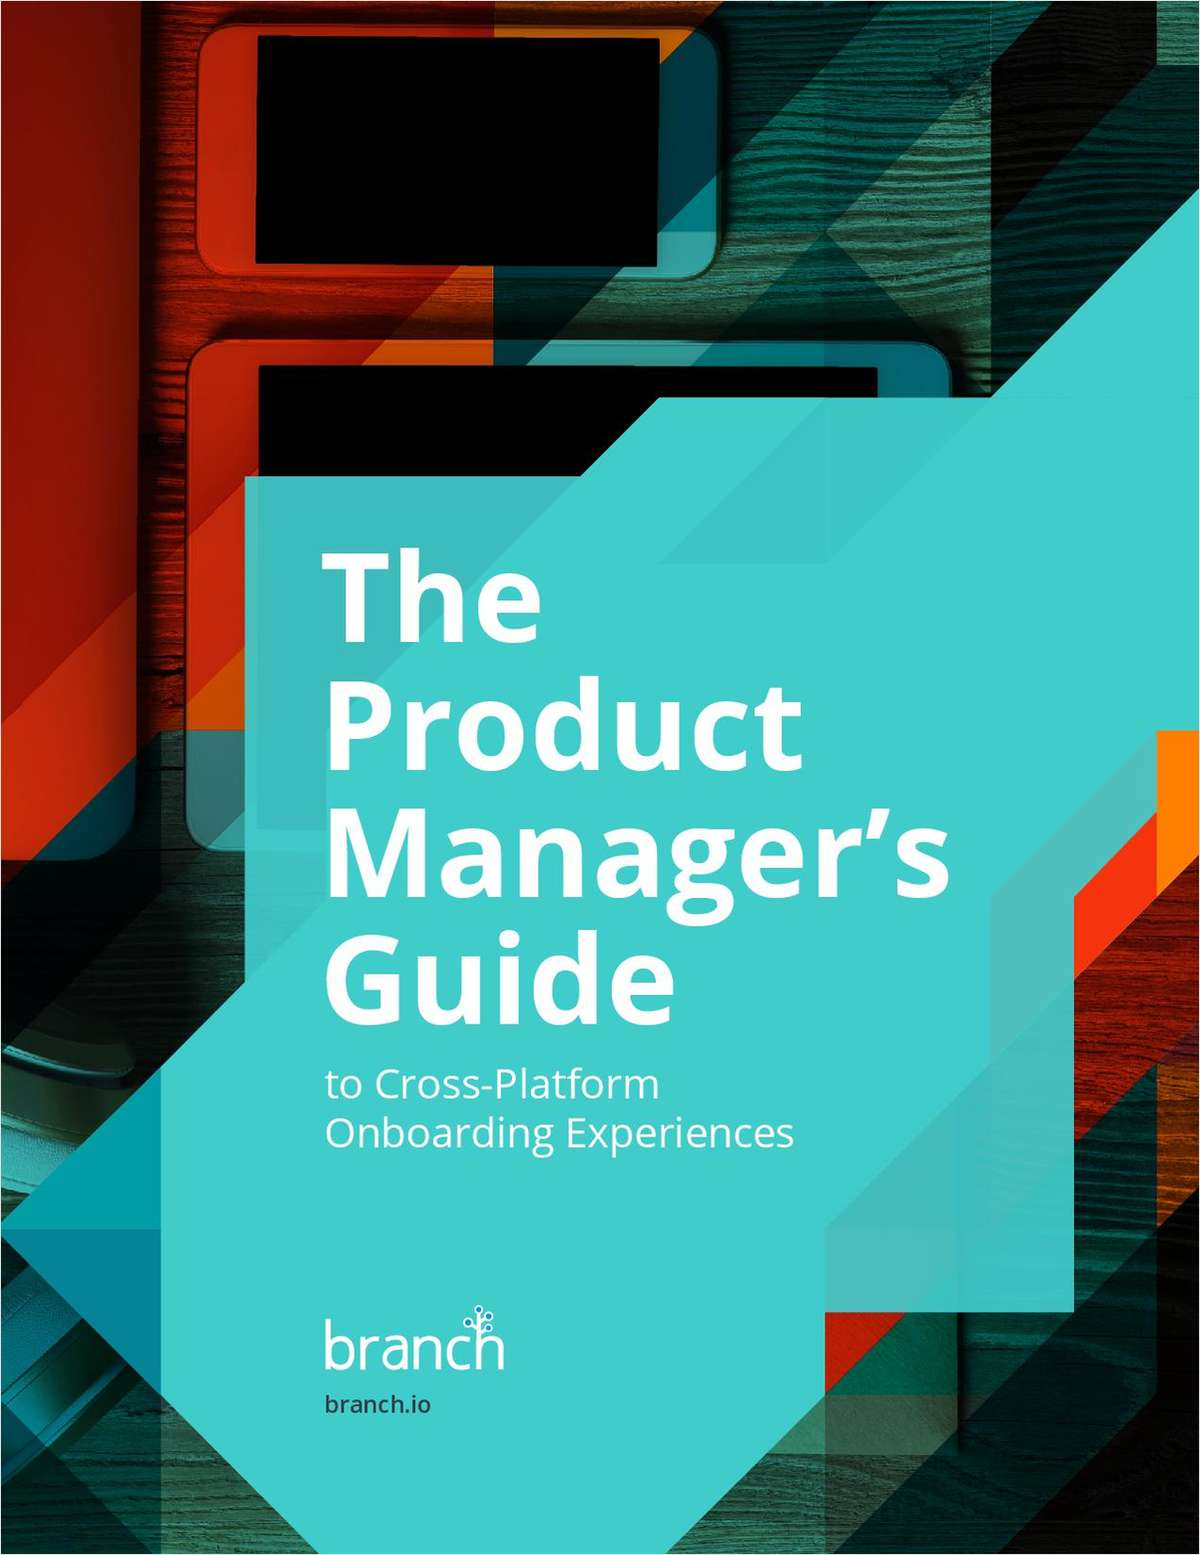 The Product Manager's Guide to Cross-Platform Onboarding Experiences